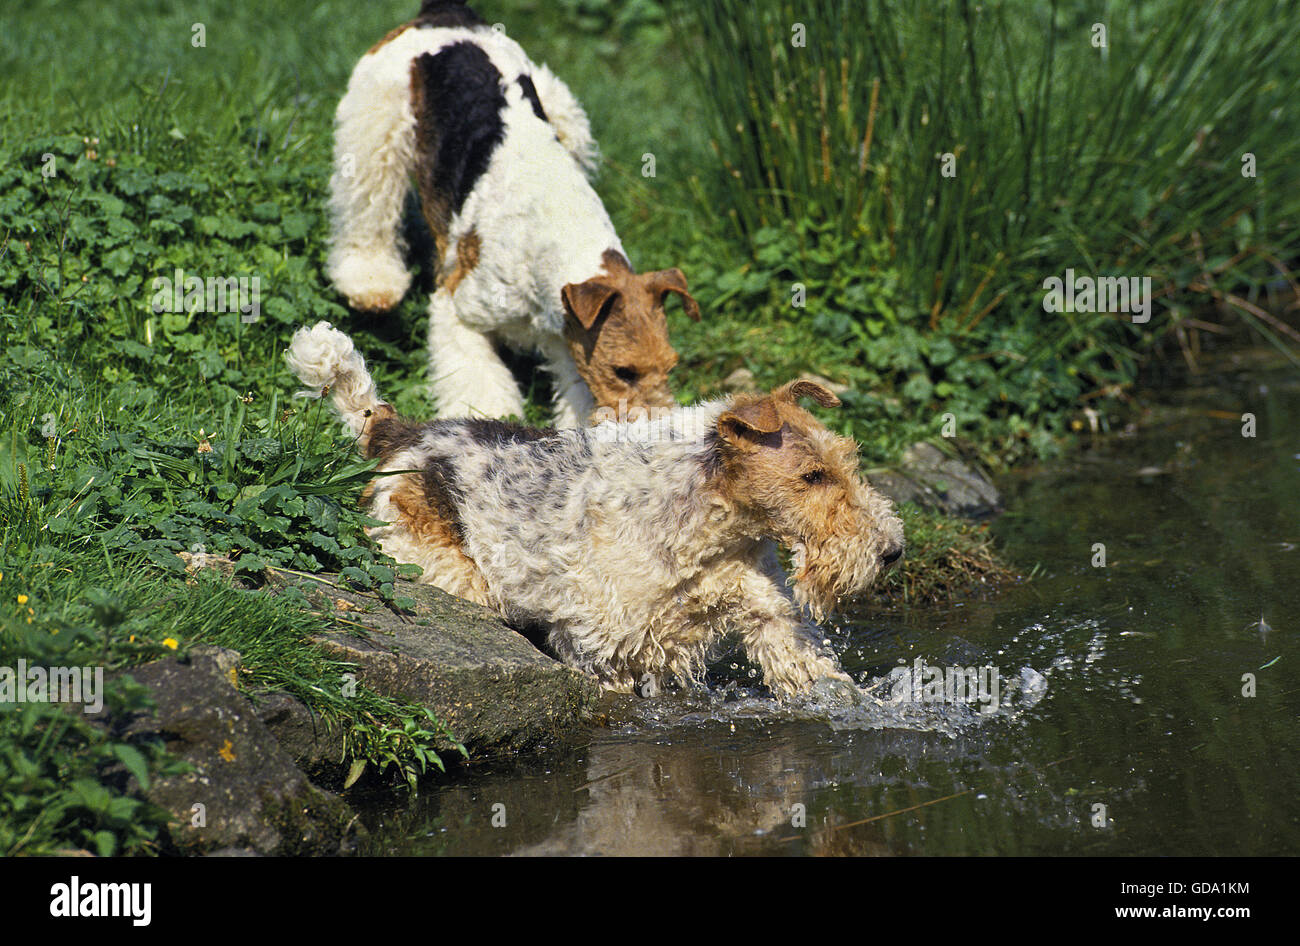 Wire Haired Fox Terrier Terrier Stockfotos & Wire Haired Fox Terrier ...